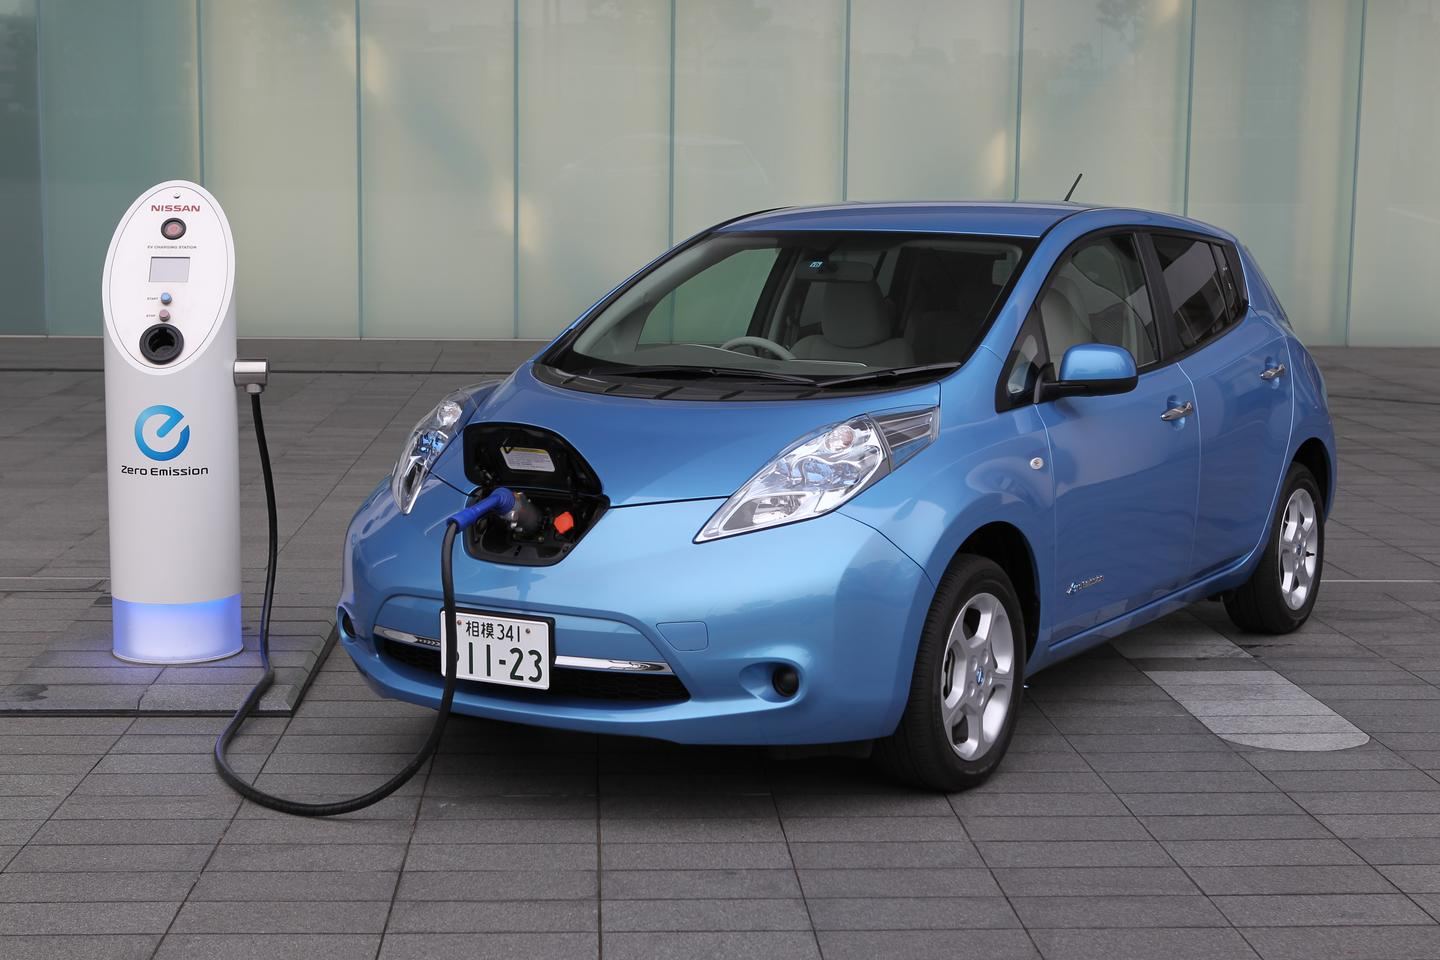 Nissan has developed an experimental system that can fully charge an EV battery in just ten minutes (existing commercial charger is pictured)(Photo: Nissan)